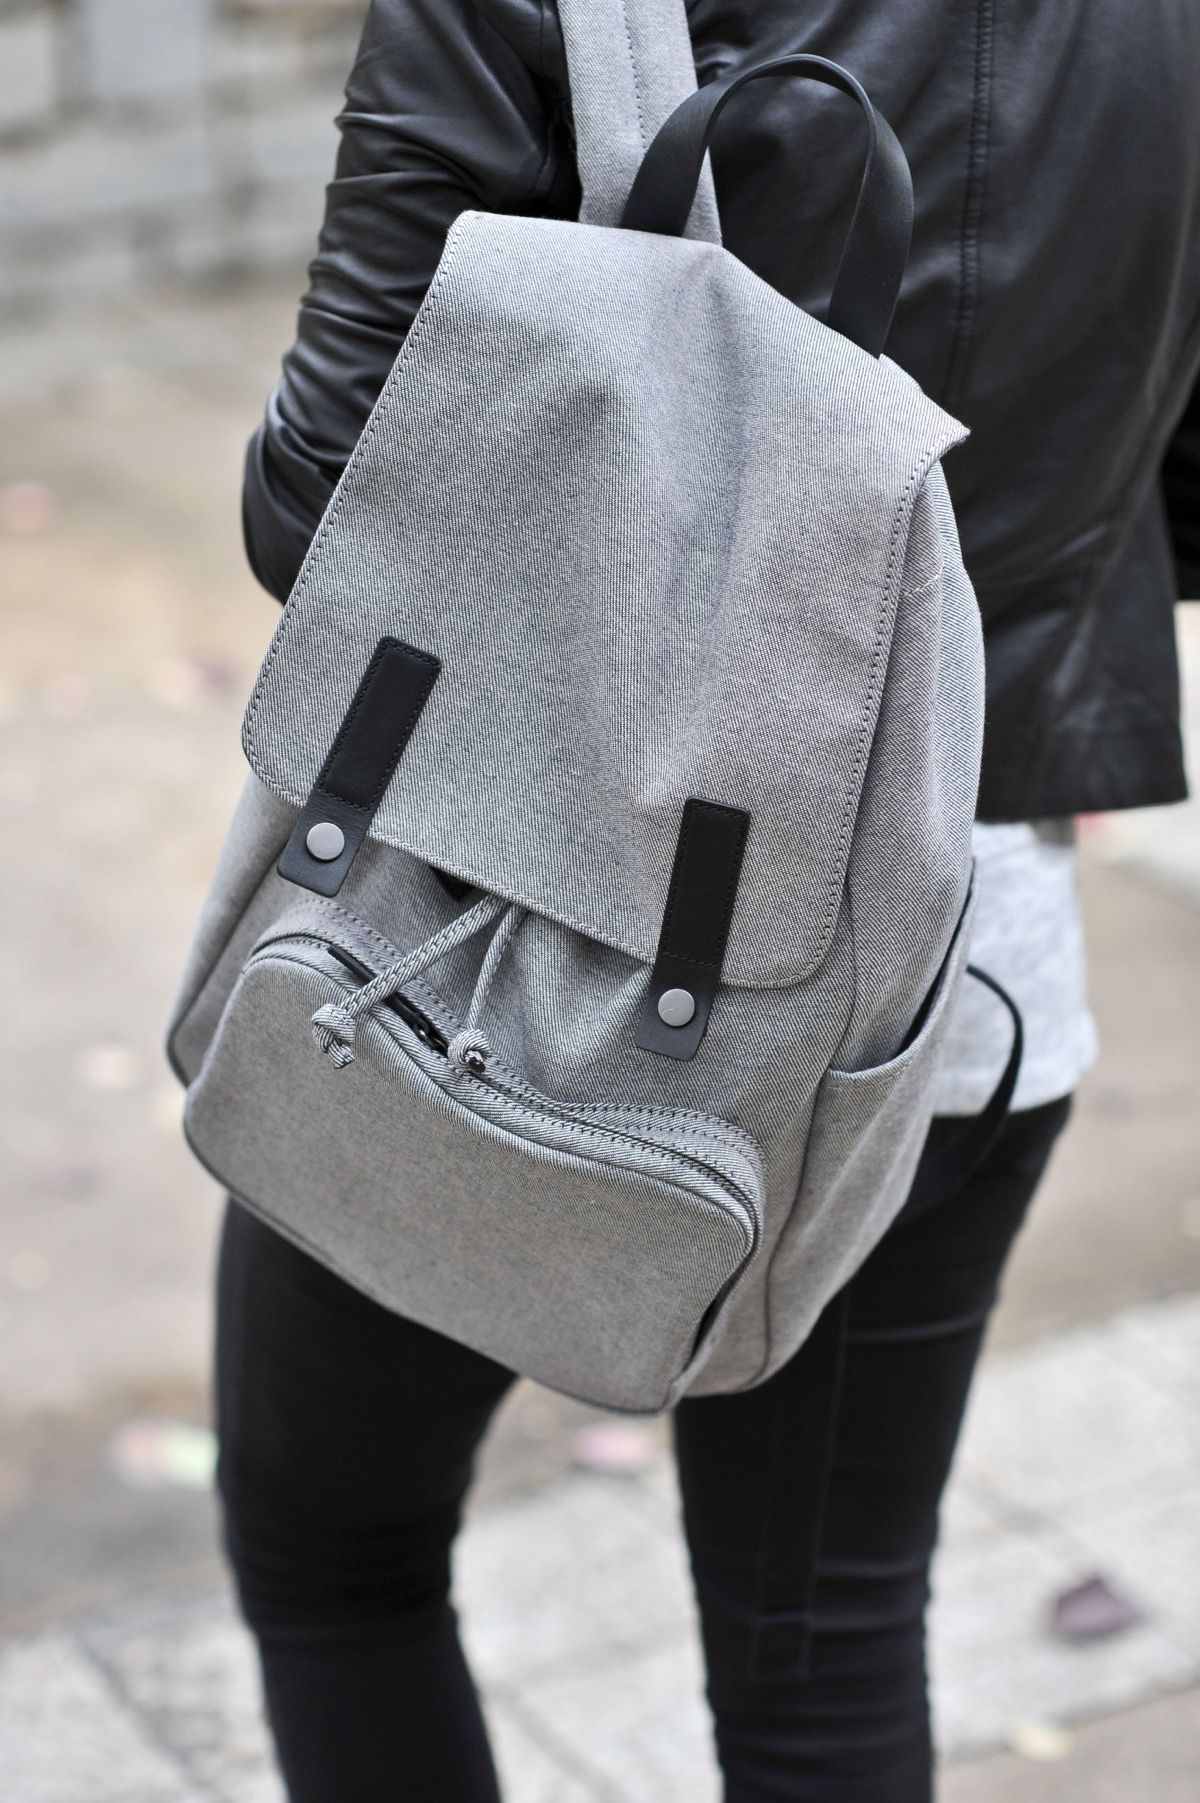 uniform grey outfit backpacks and gray